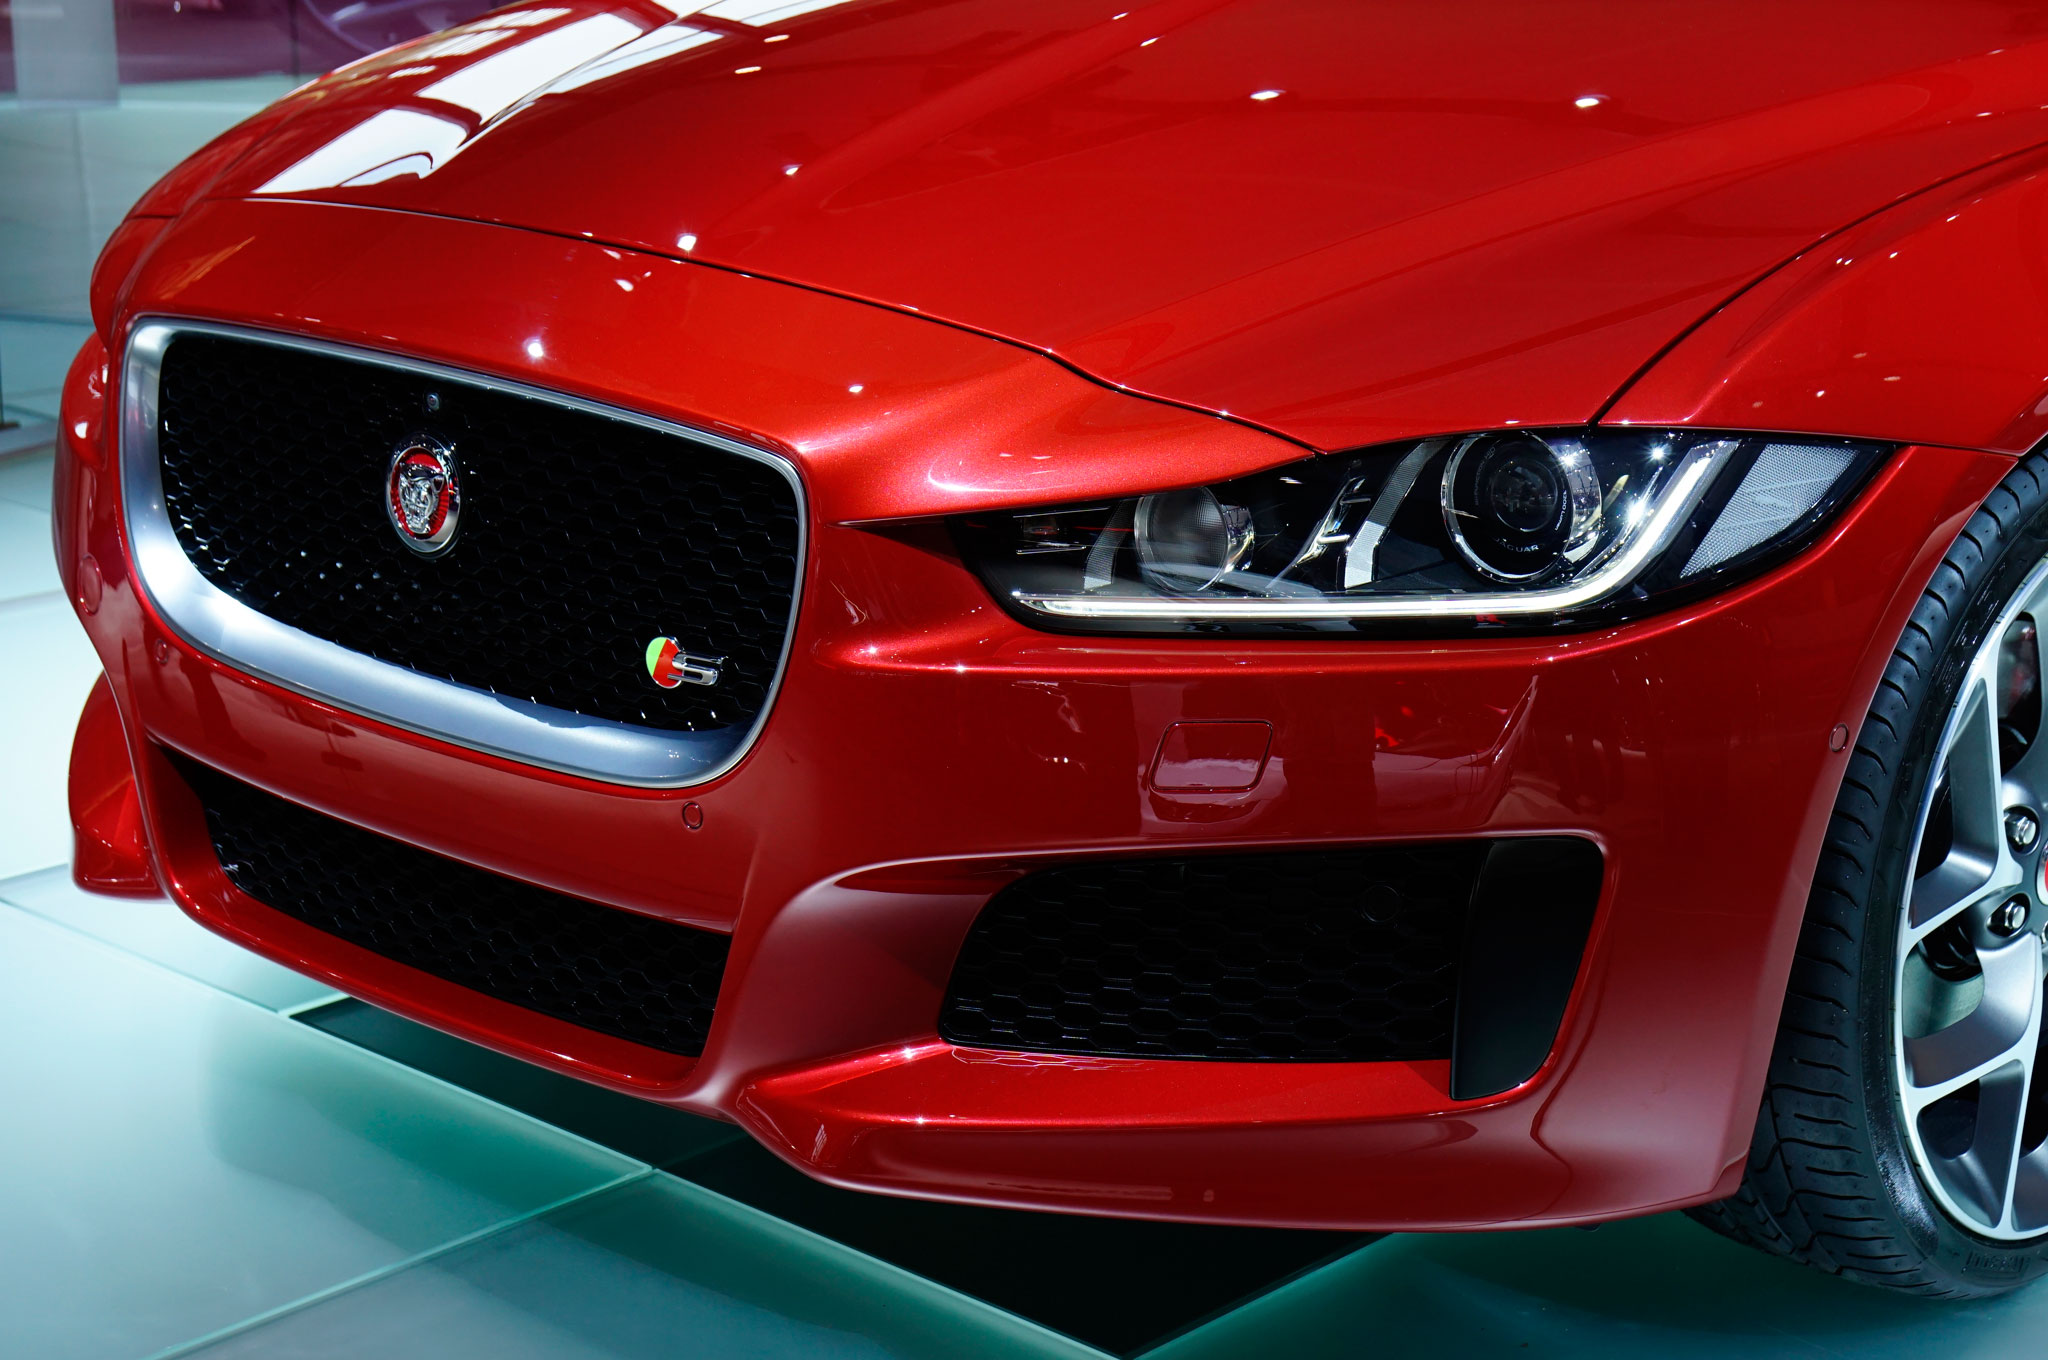 2016 Jaguar Xe Front Headlamp (Photo 4 of 12)